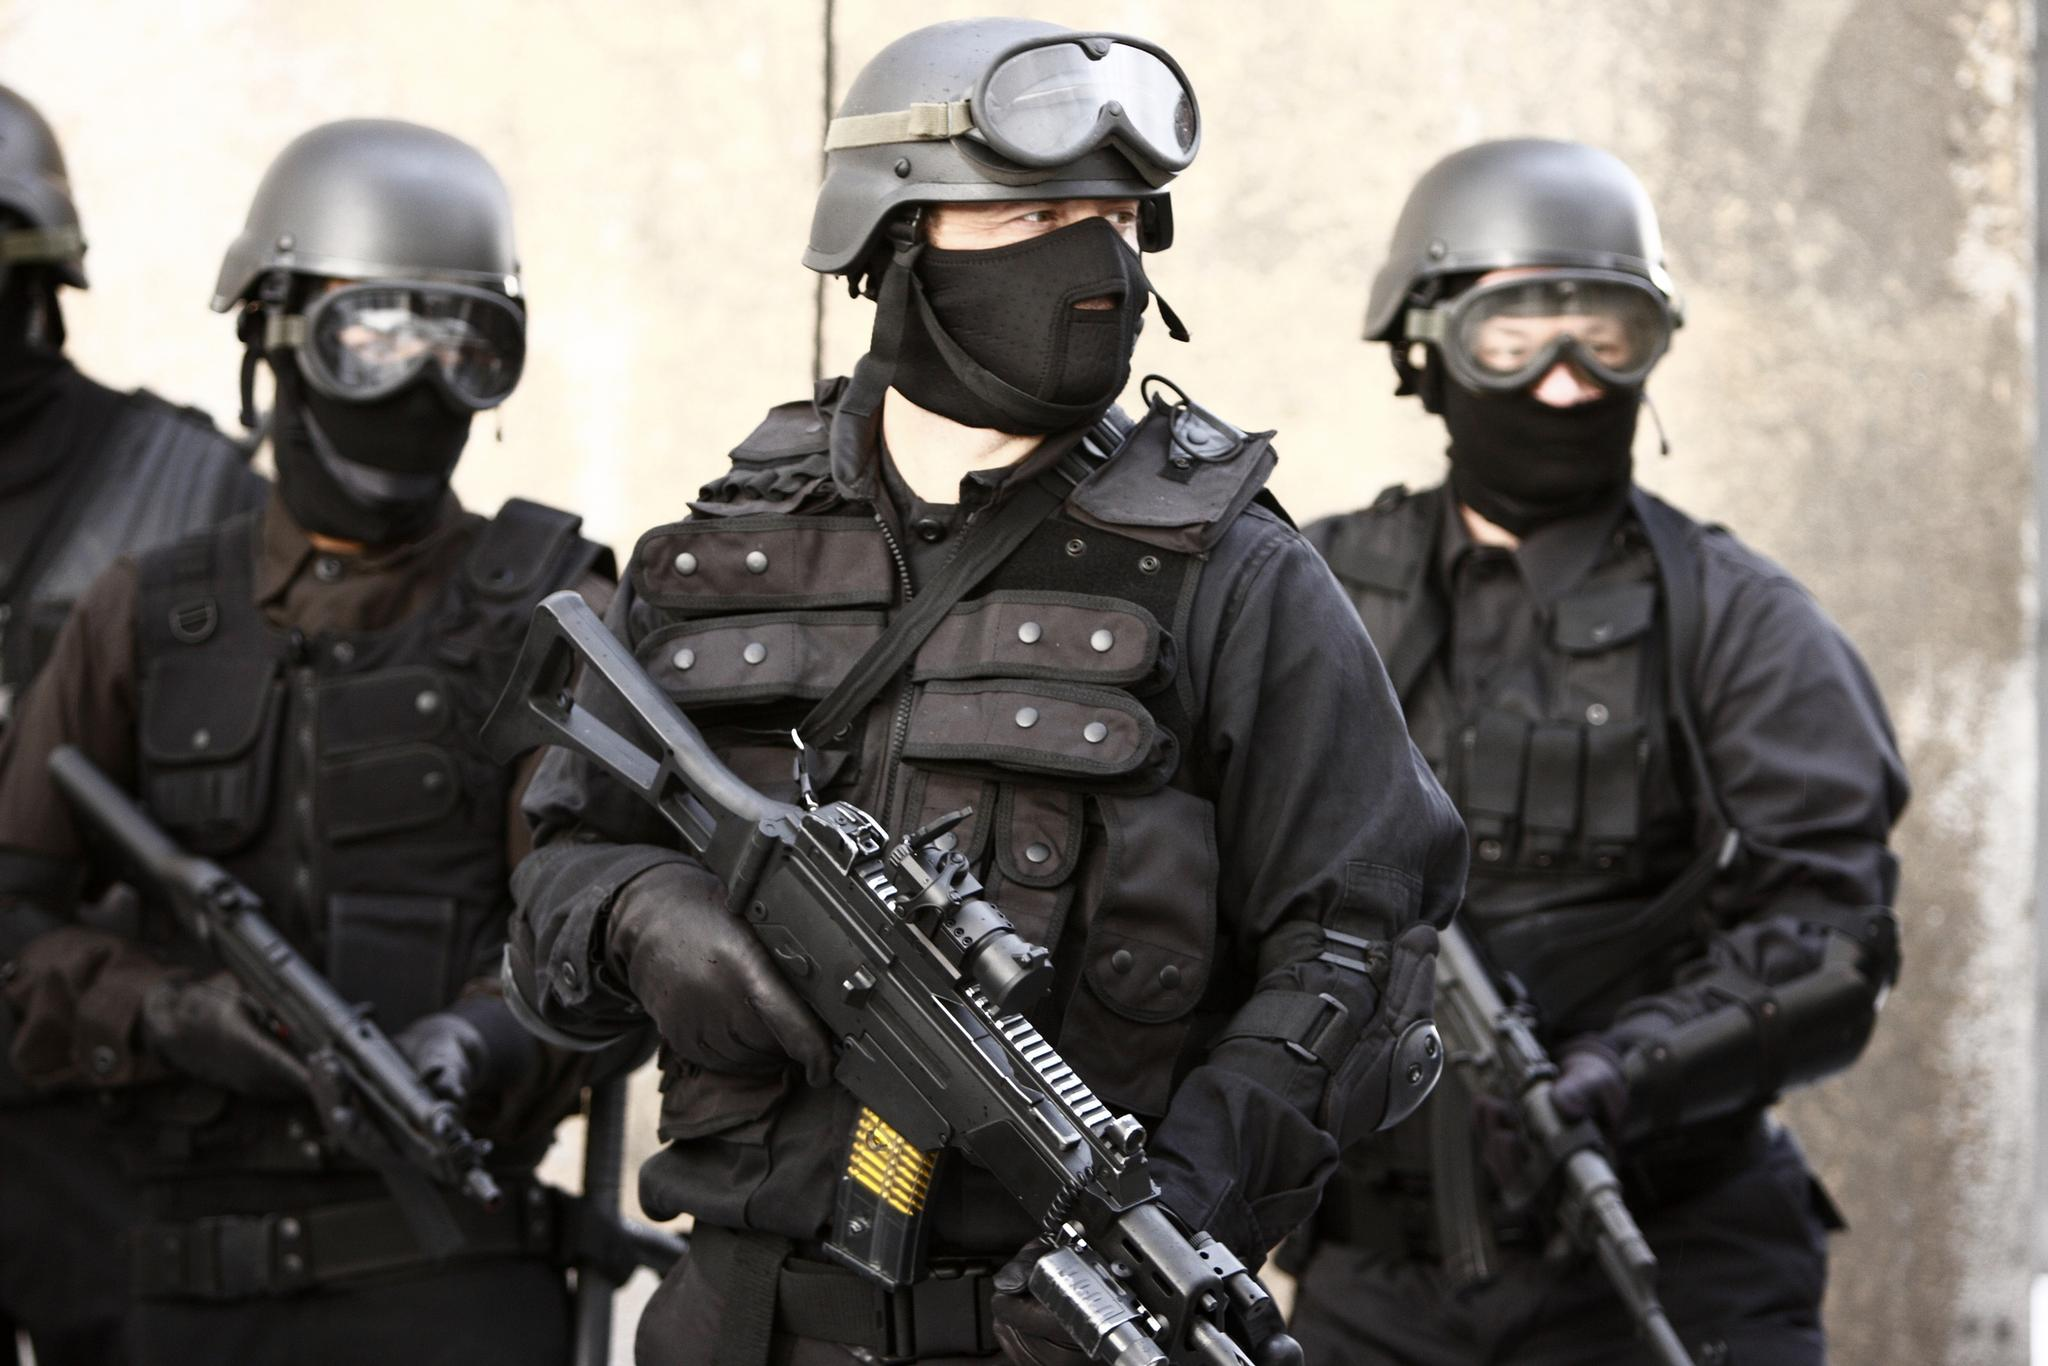 SWAT officer in full tactical gear   The Observation Deck 2048x1366